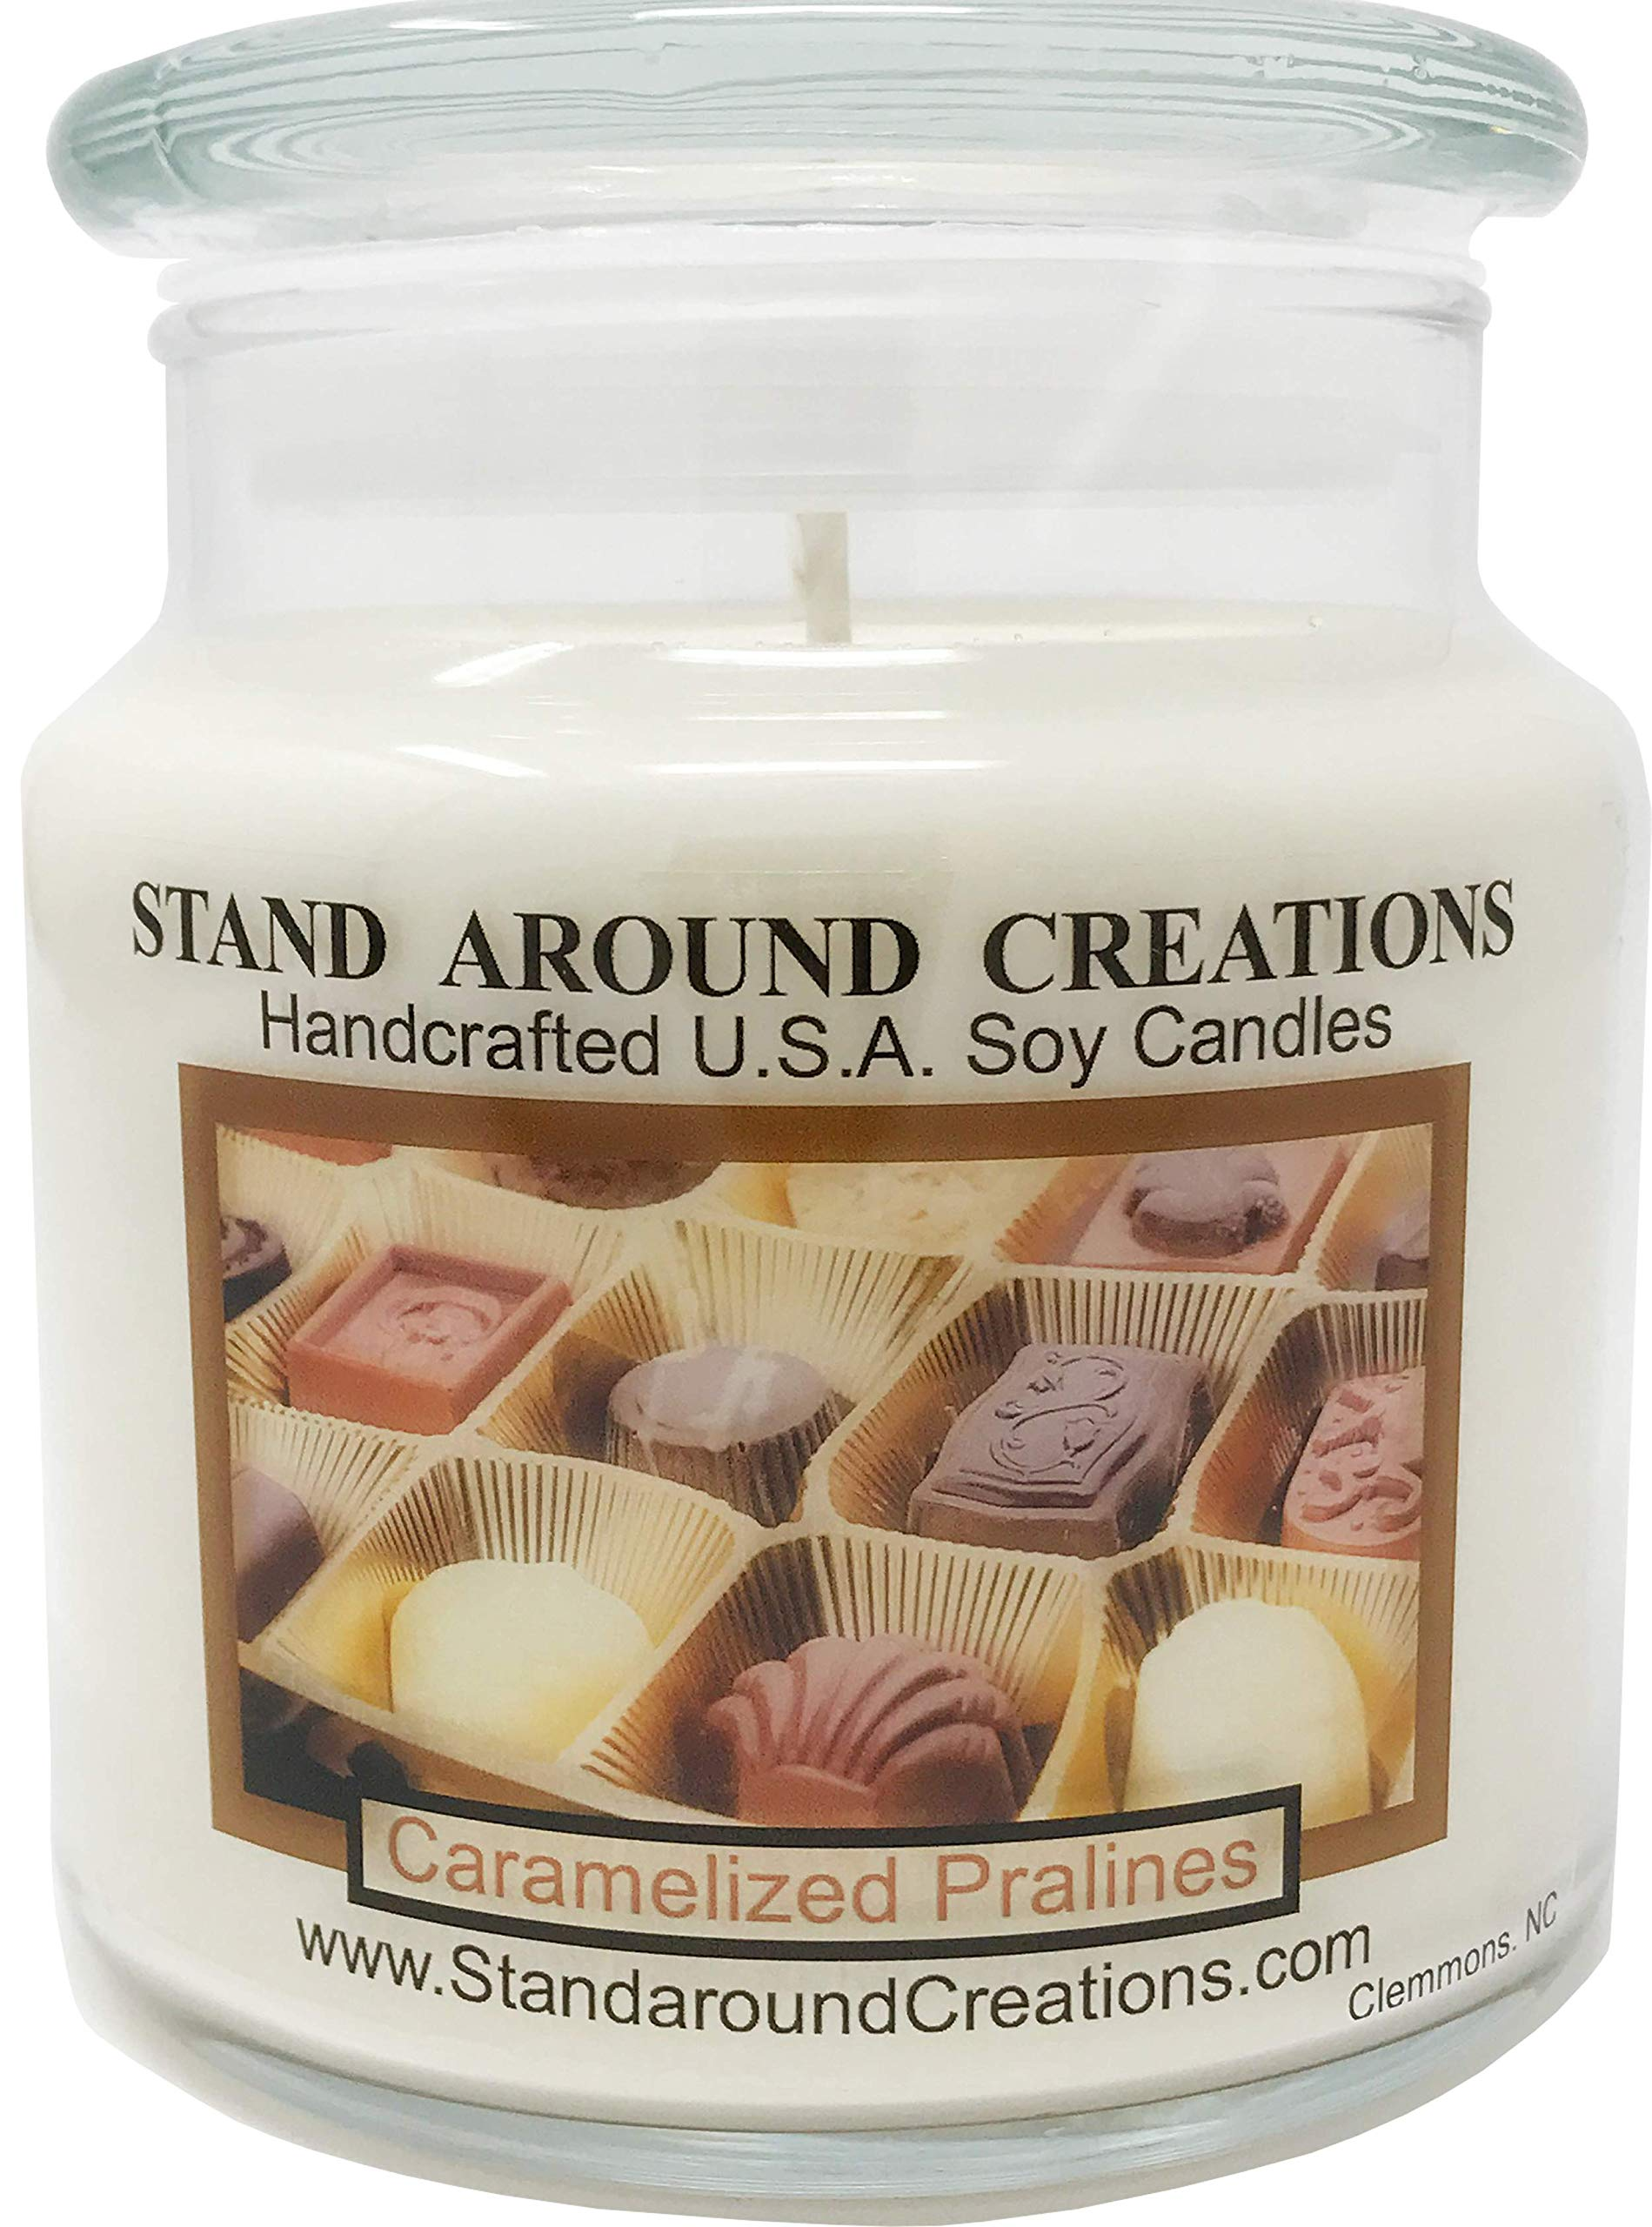 Premium 100% Soy Apothecary Candle - 16 oz.- Caramelized Pralines: An irresistible blend of sweet warm vanilla caramel, dark brown sugar w/butter-drenched pecans.